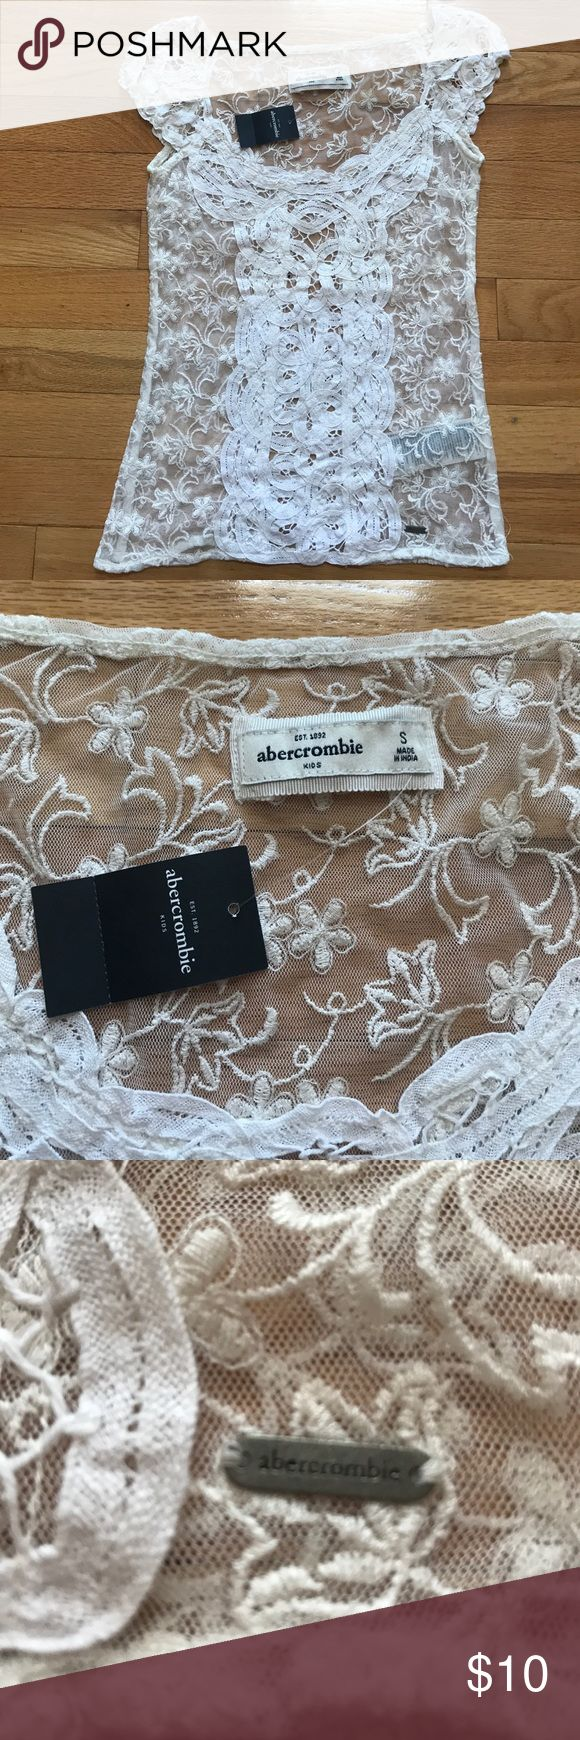 NWT abercrombie girls Lace top Size Small Cream NWT abercrombie girls Lace top Size Small Cream. Smoke free pet free. abercrombie kids Shirts & Tops Tees - Short Sleeve